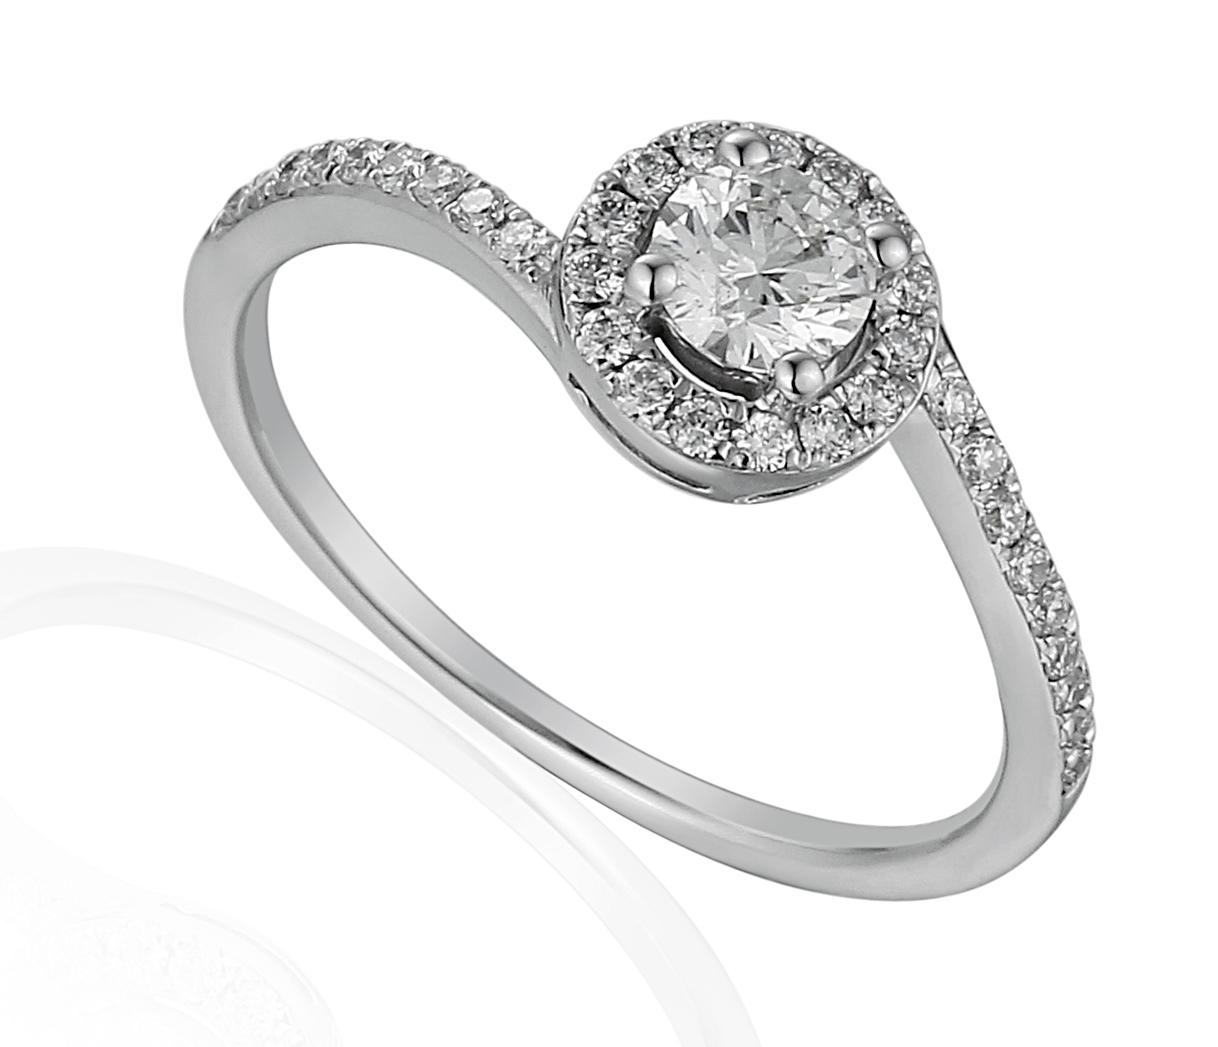 18ct White Gold Brilliant Cut Halo Design Ring with Diamond Set Crossover Shoulders-0